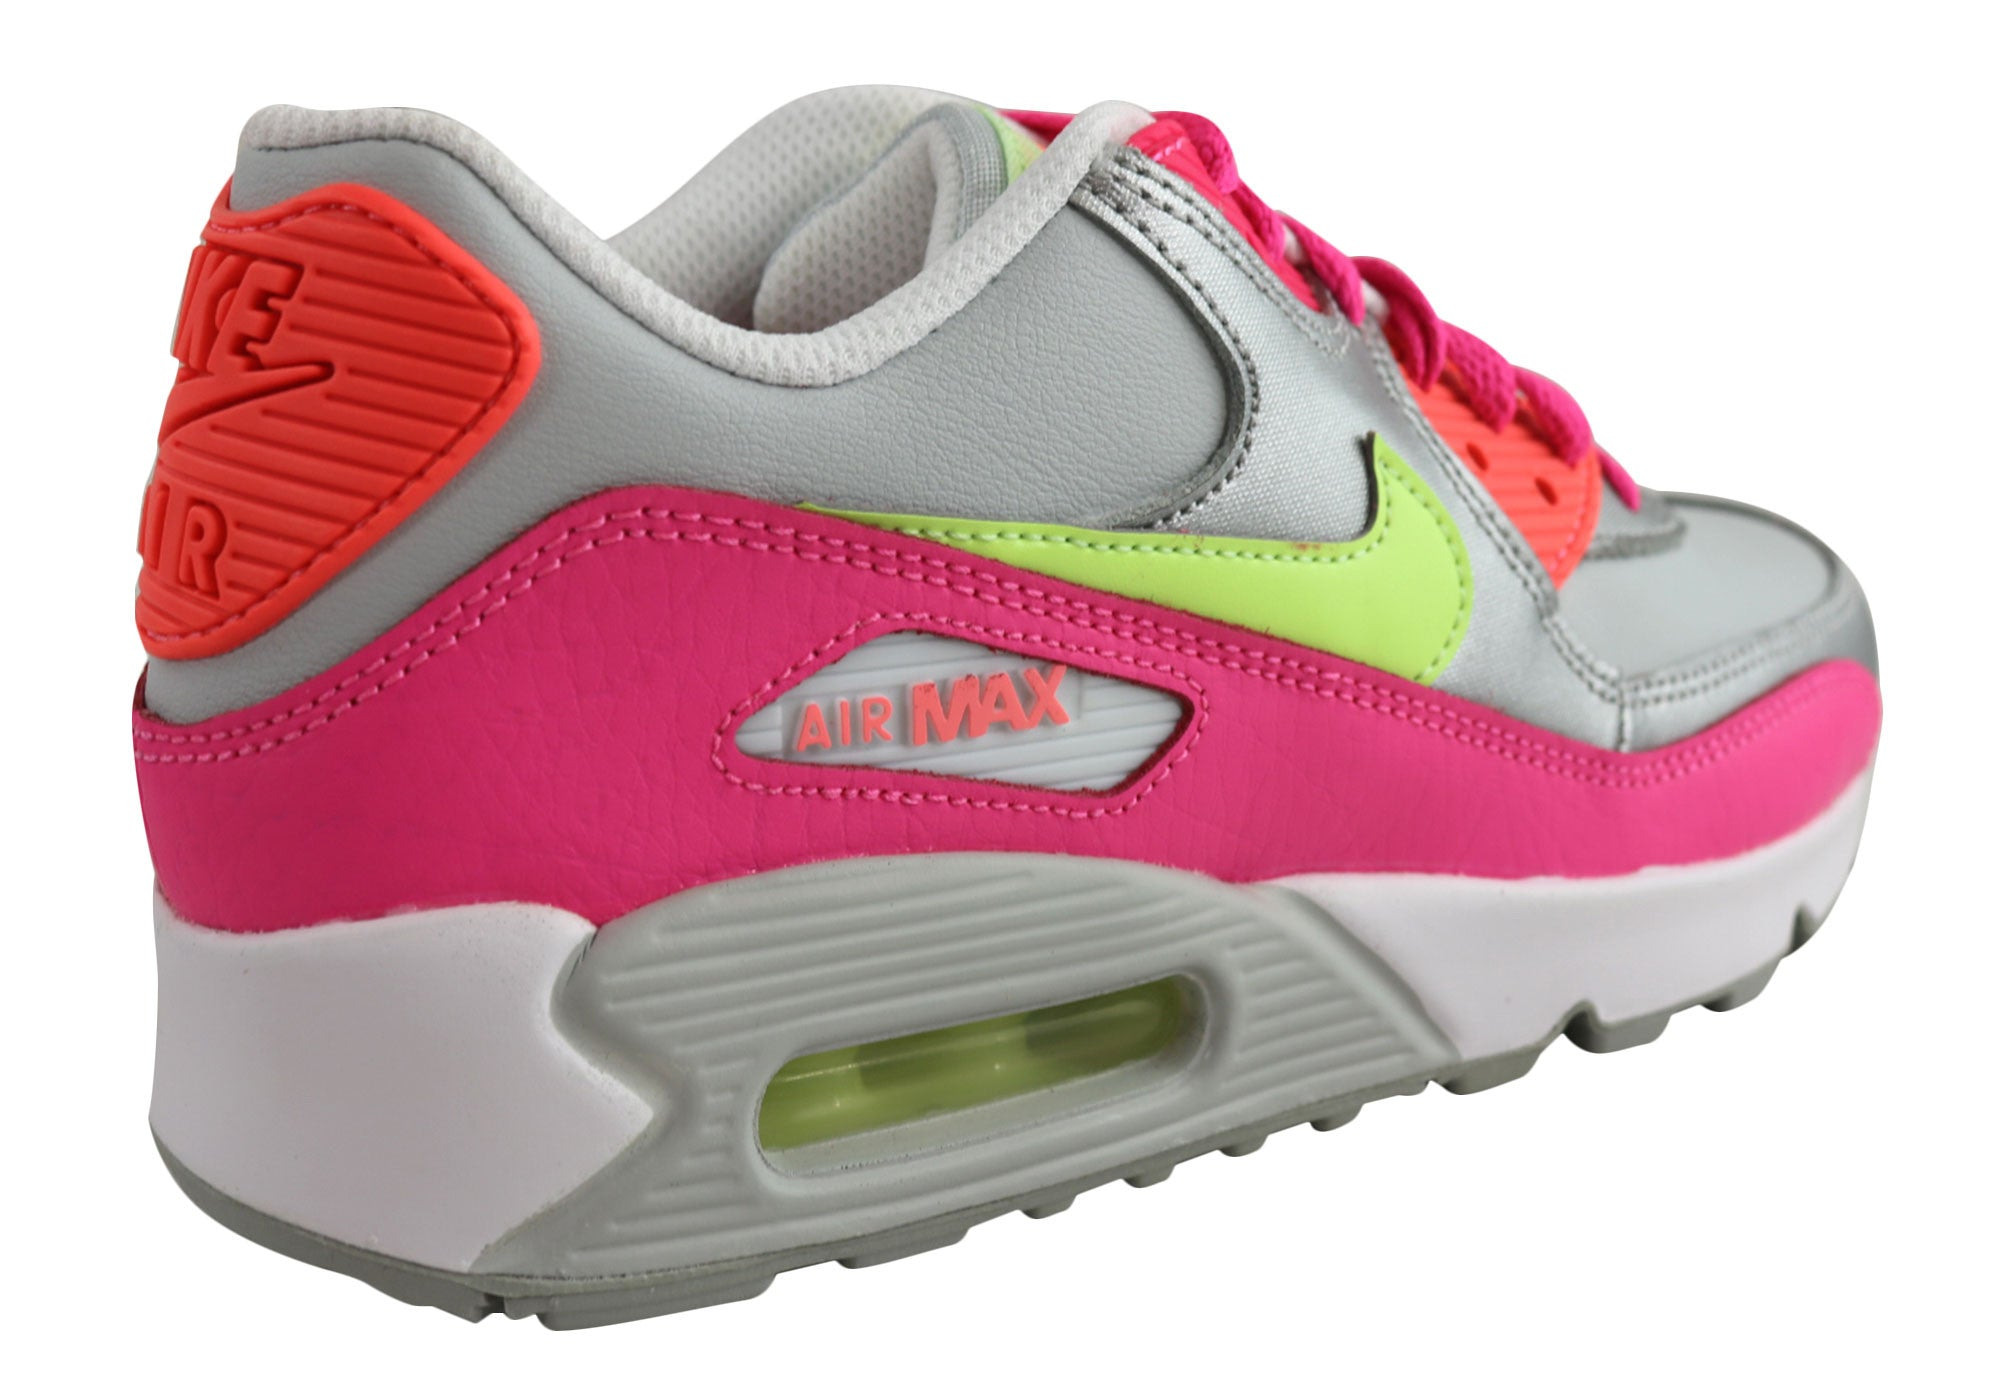 competitive price 18265 ad00e Home Nike Air Max 90 Ltr (GS) Older Kids Girls Sport Shoes. White Pink   White Pink  White Pink  White Pink ...